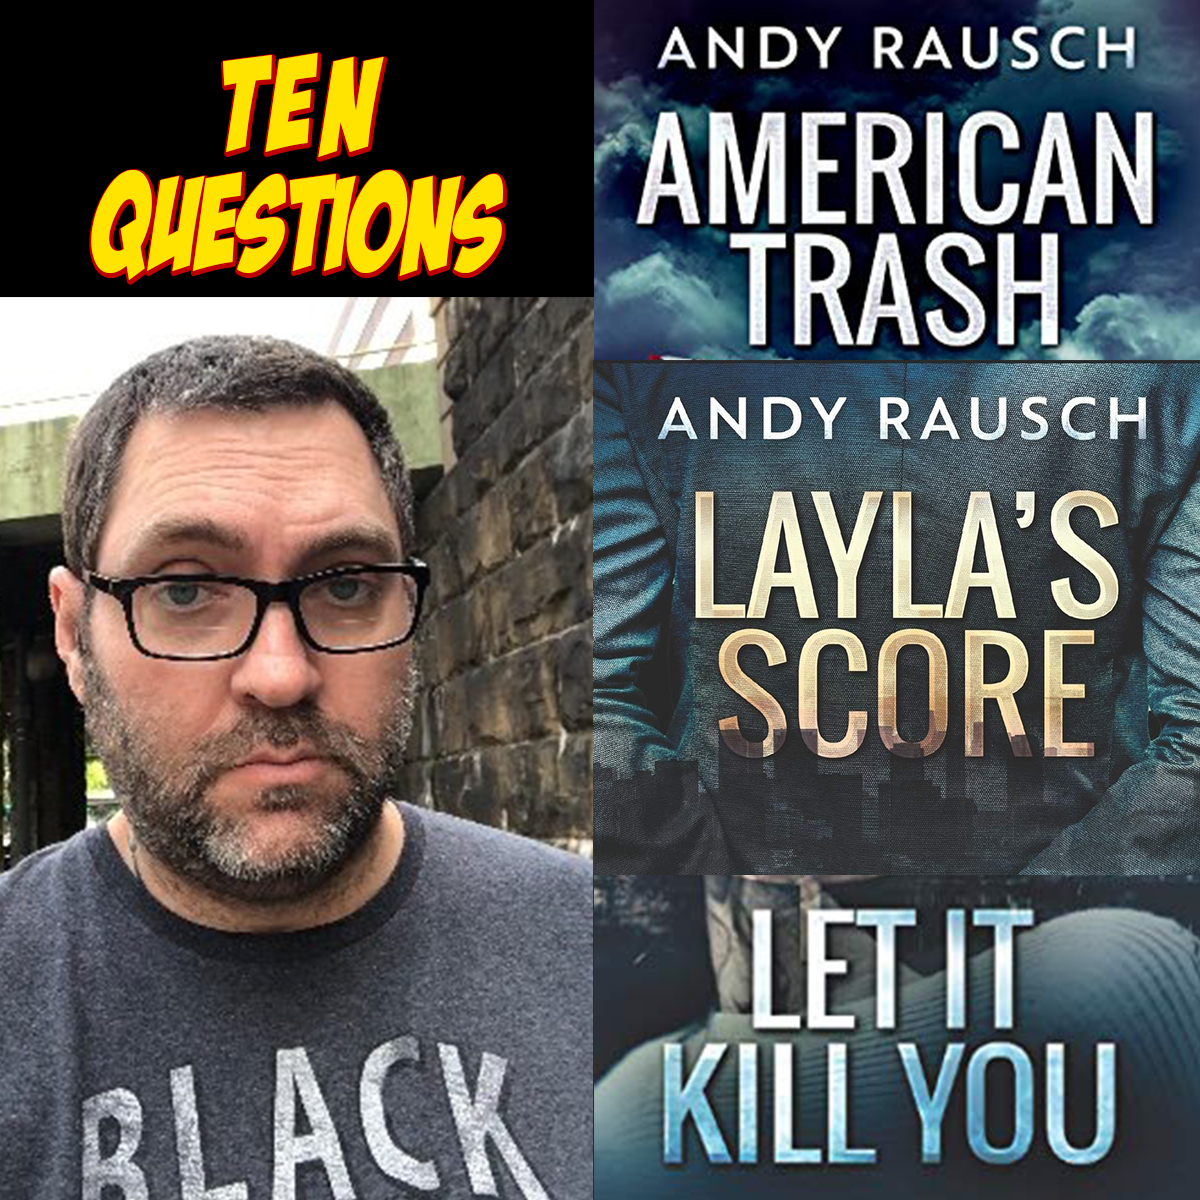 10 Questions for Andy Rausch